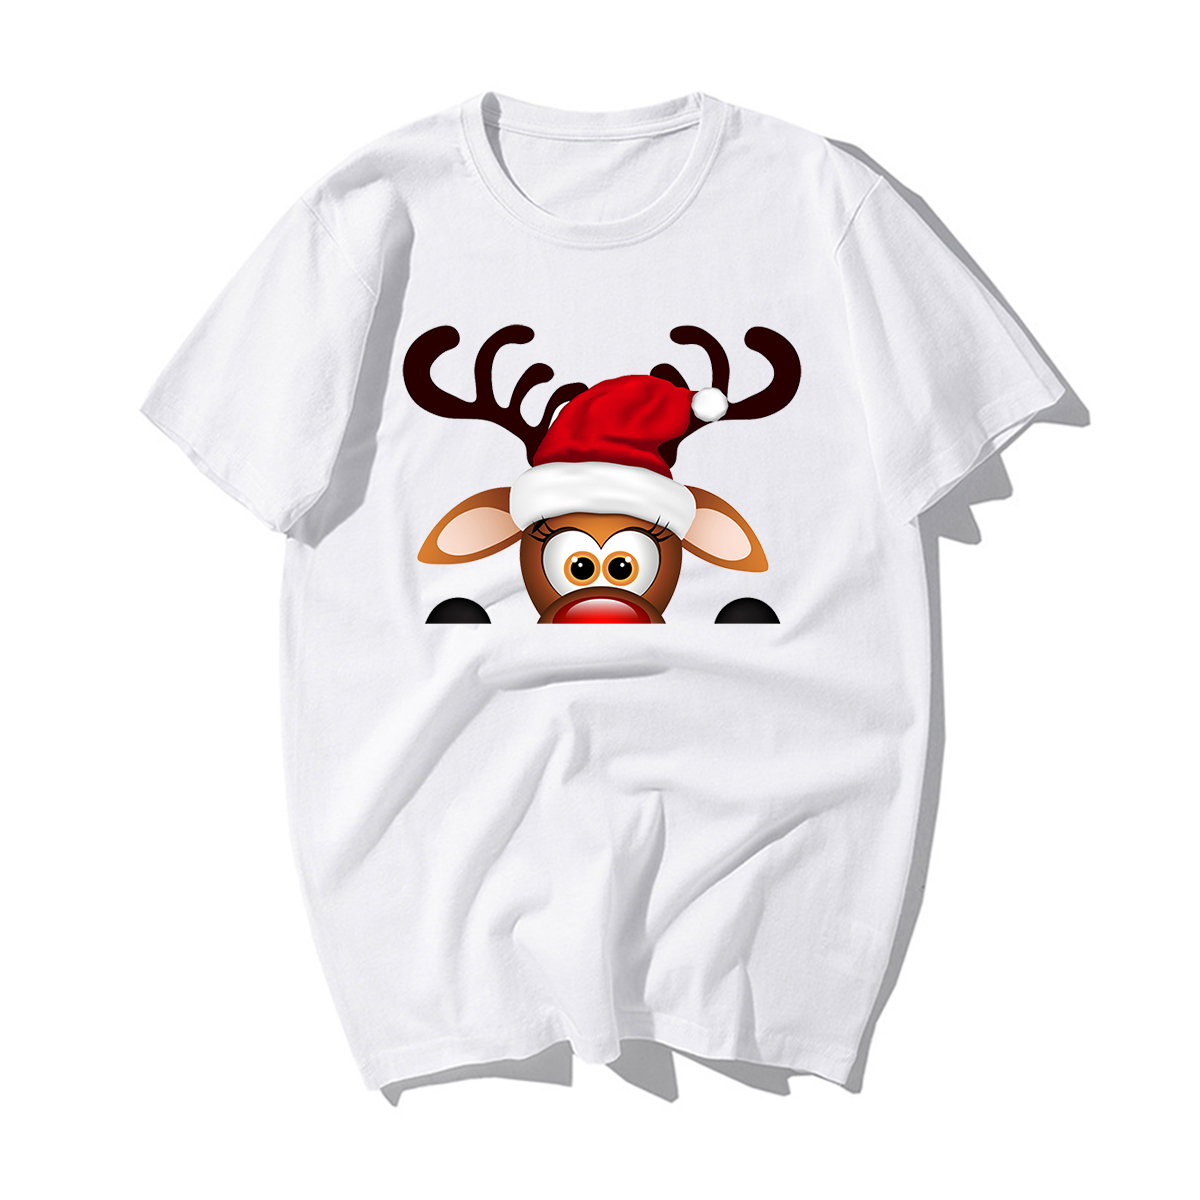 Funny Merry Christmas T-shirts Men New Casual Cotton Reindeer Santa Claus Christmas Tree Tshirt Mens Xmas Happy New Year Gift